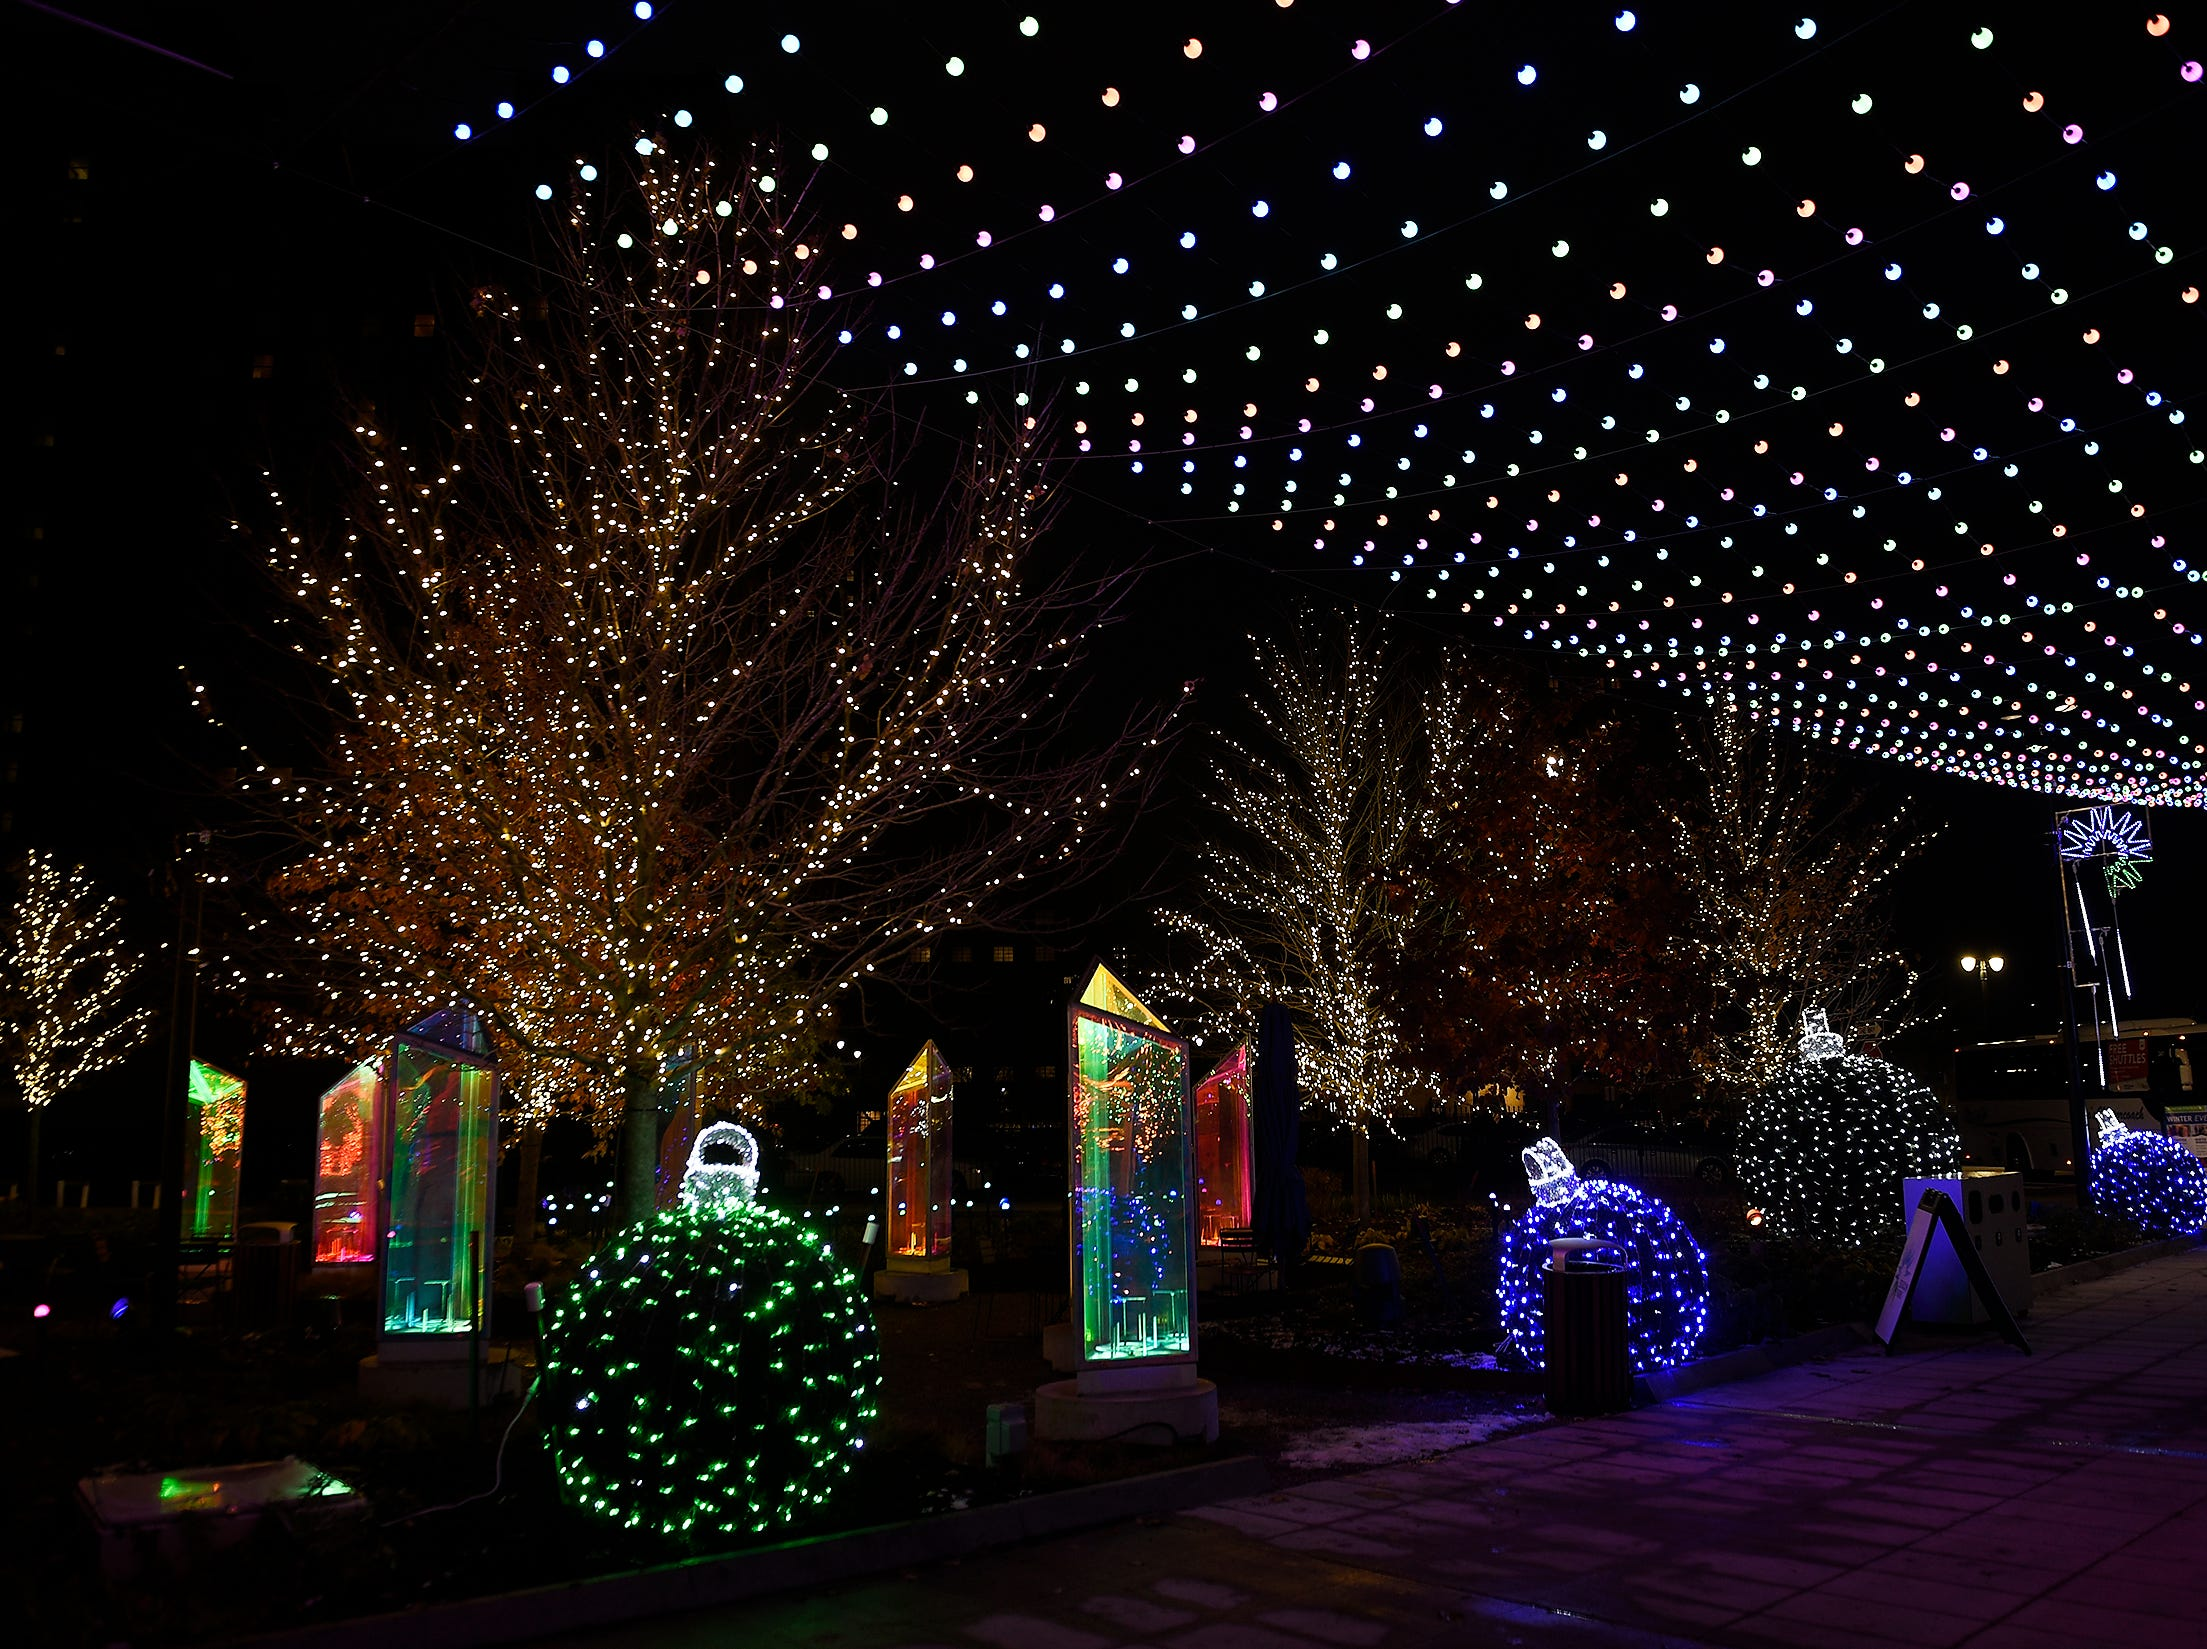 Lighted ornaments are on display in Beacon Park.